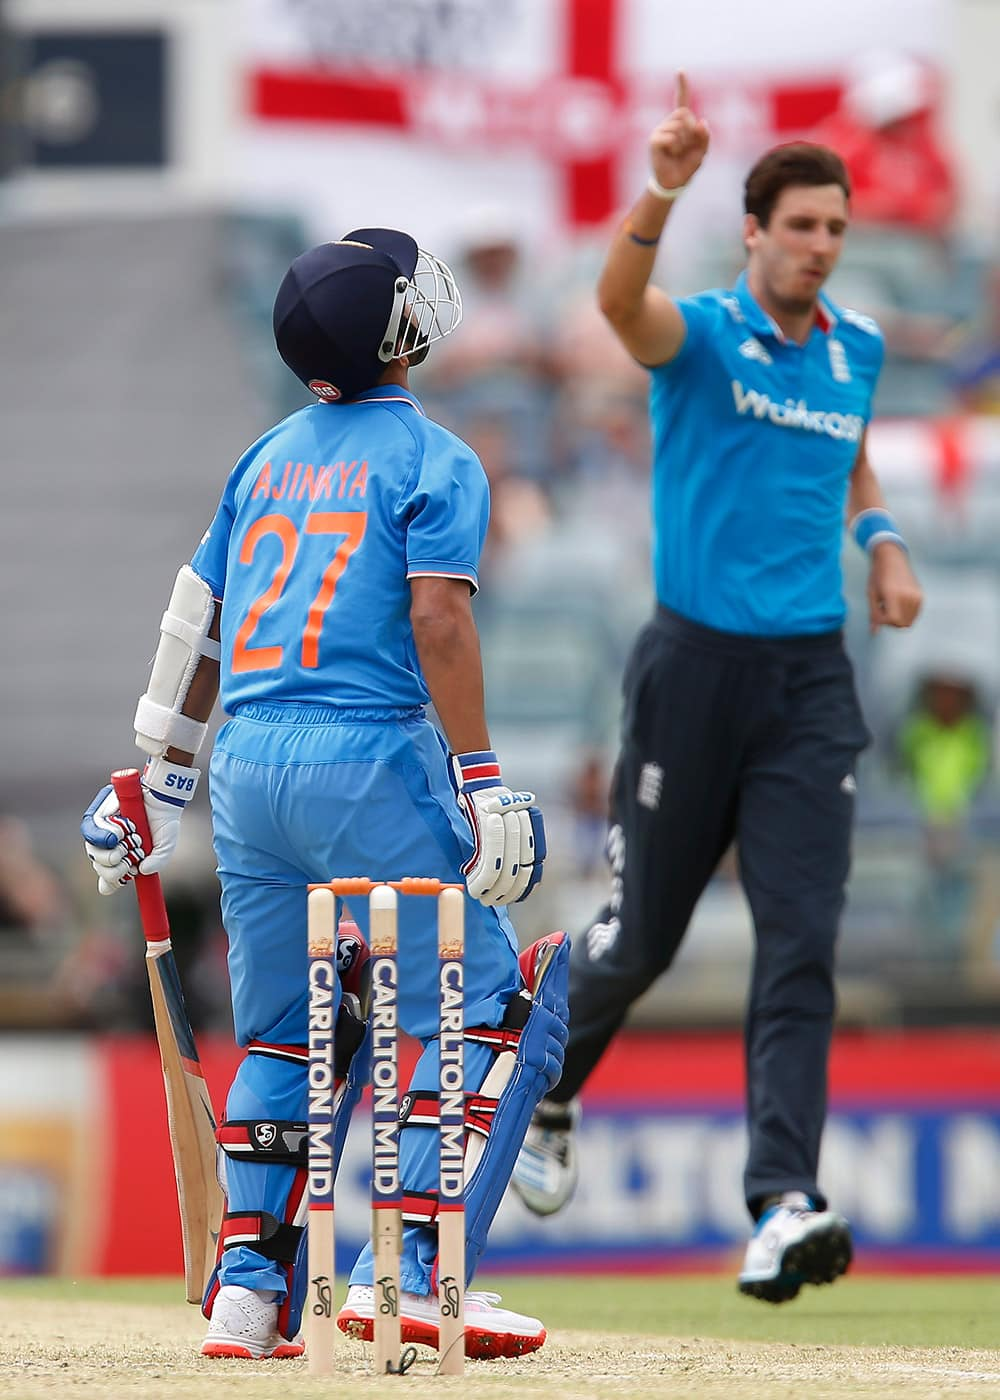 Ajinkya Rahane reacts after being caught behind for 73 runs off the bowling of England's Steven Finn during their one day international cricket match in Perth, Australia.